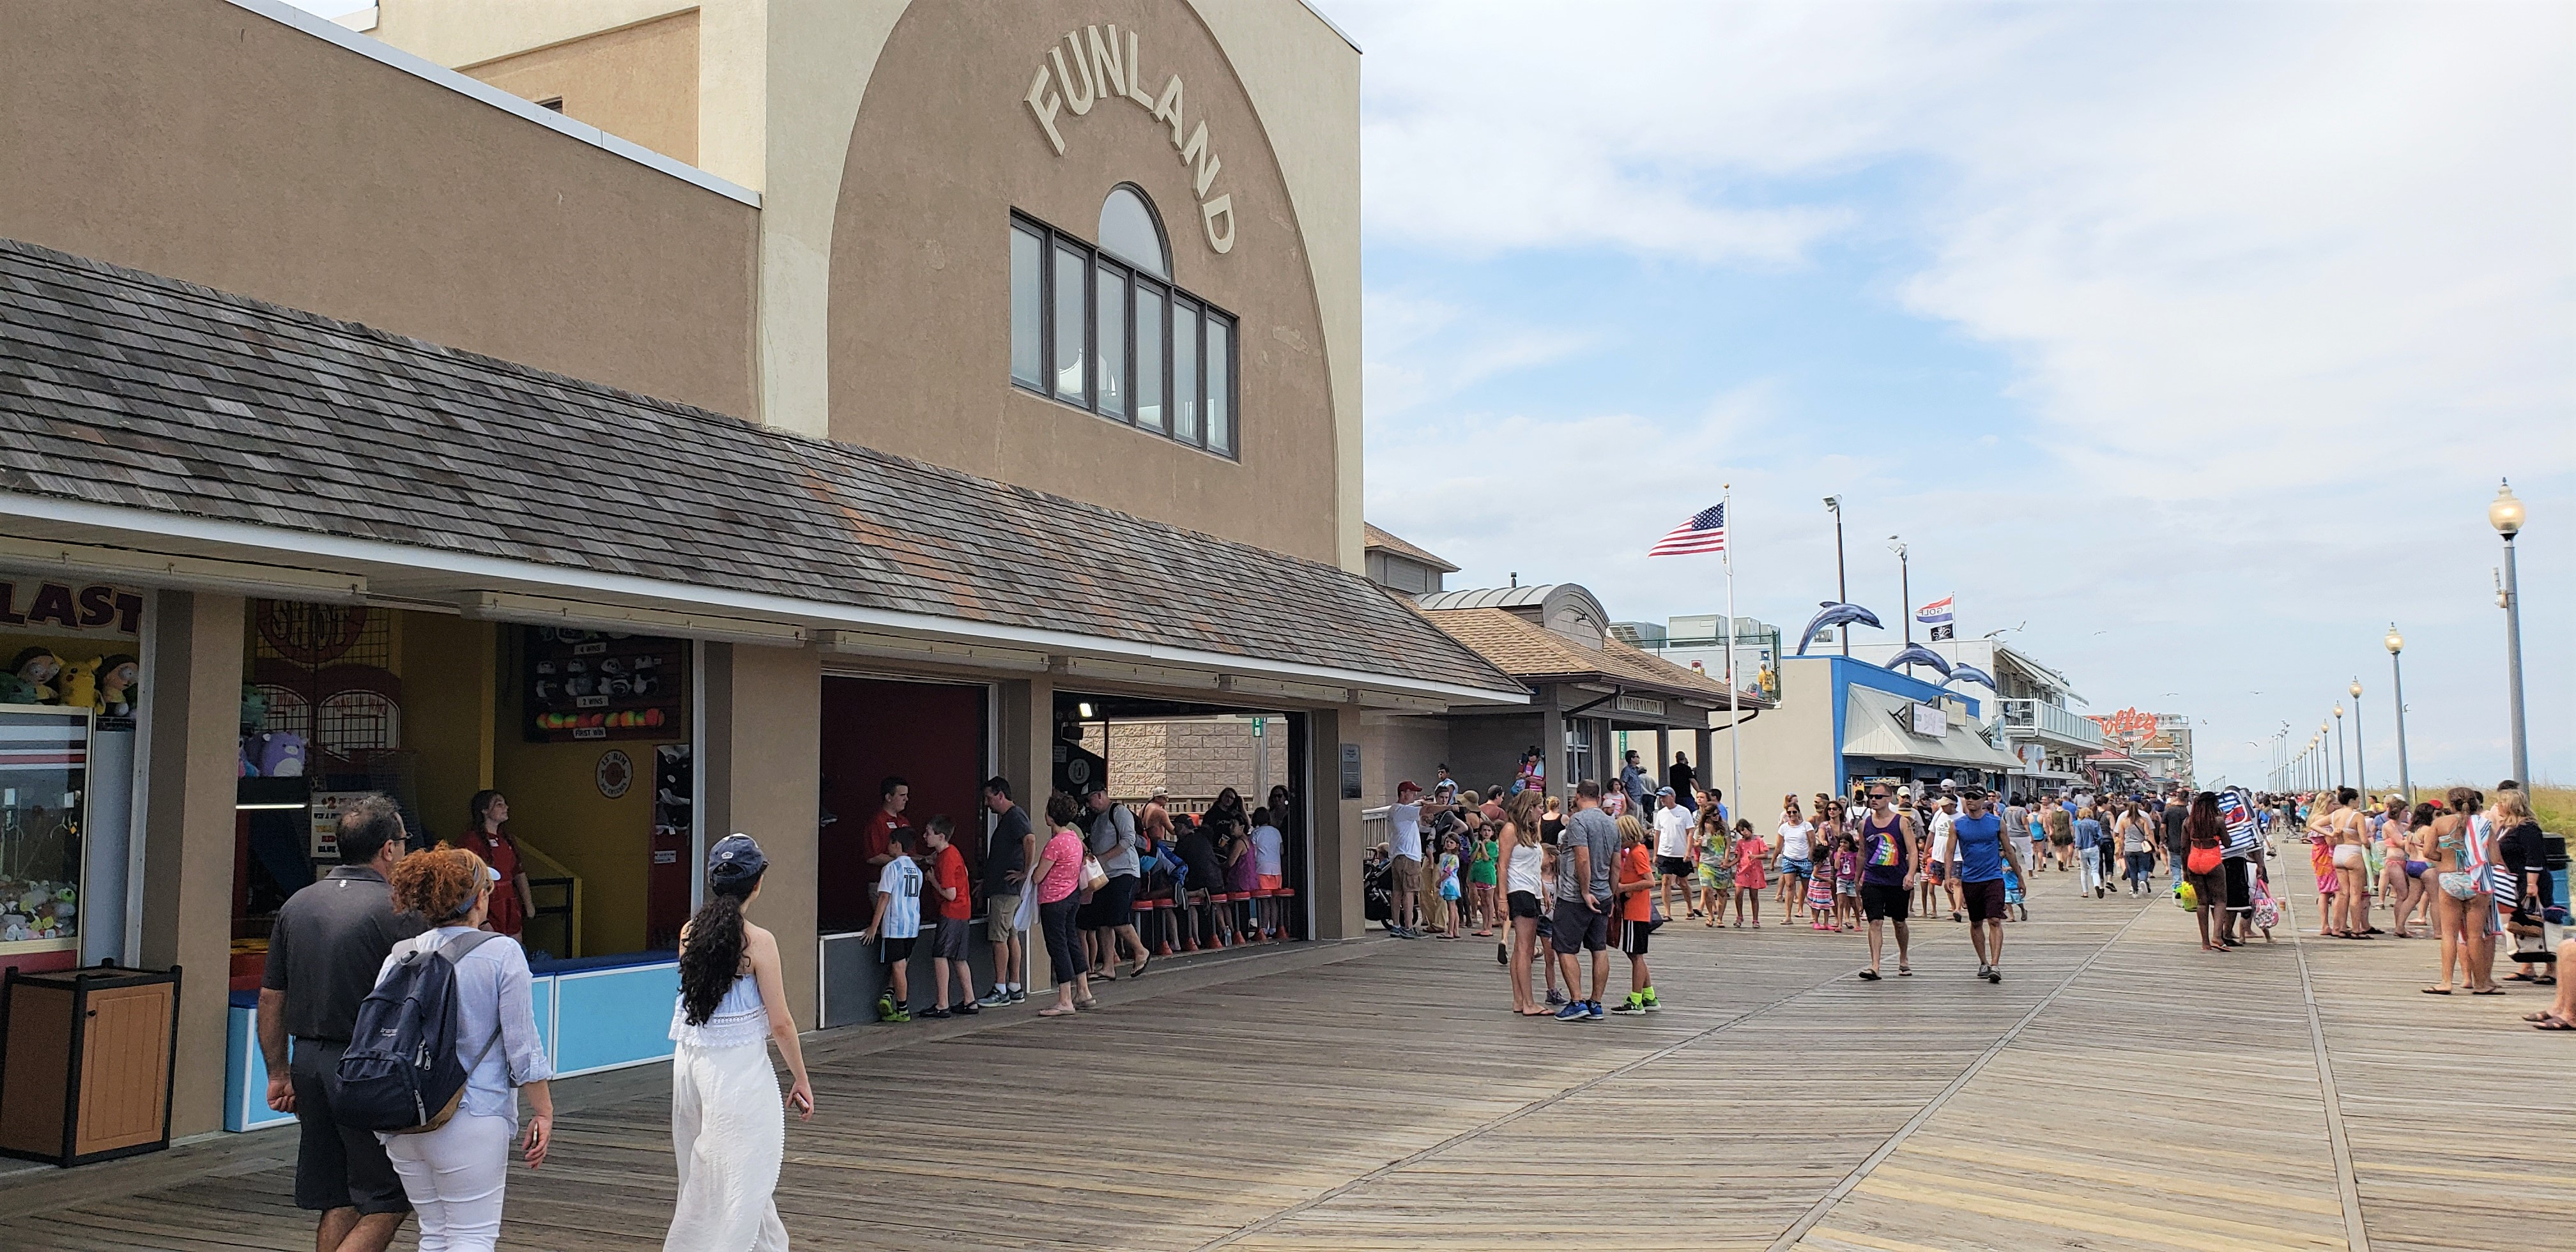 Rehoboth Beach boardwalk - Things to Do in Rehoboth Beach